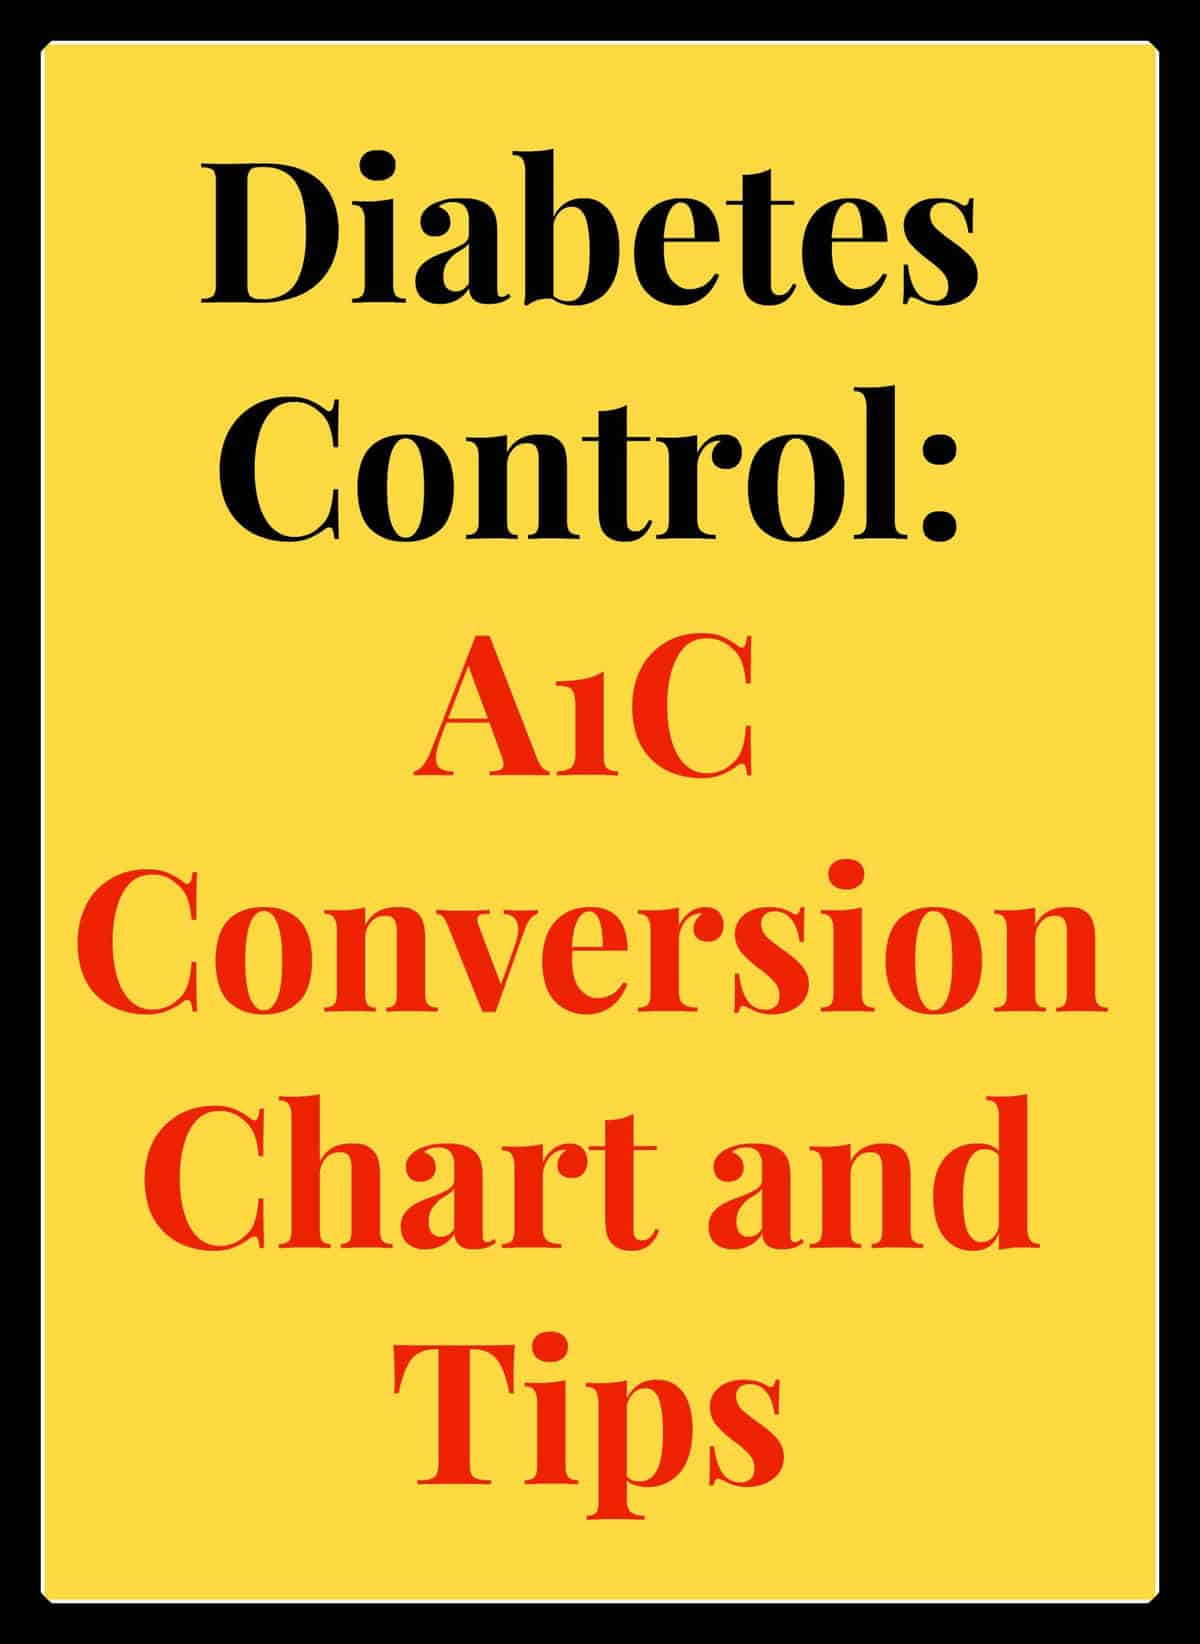 A1C is useful for measuring the level of long-term glucose control. Here's a glucose to A1C chart to help you understand your numbers. #a1cchart